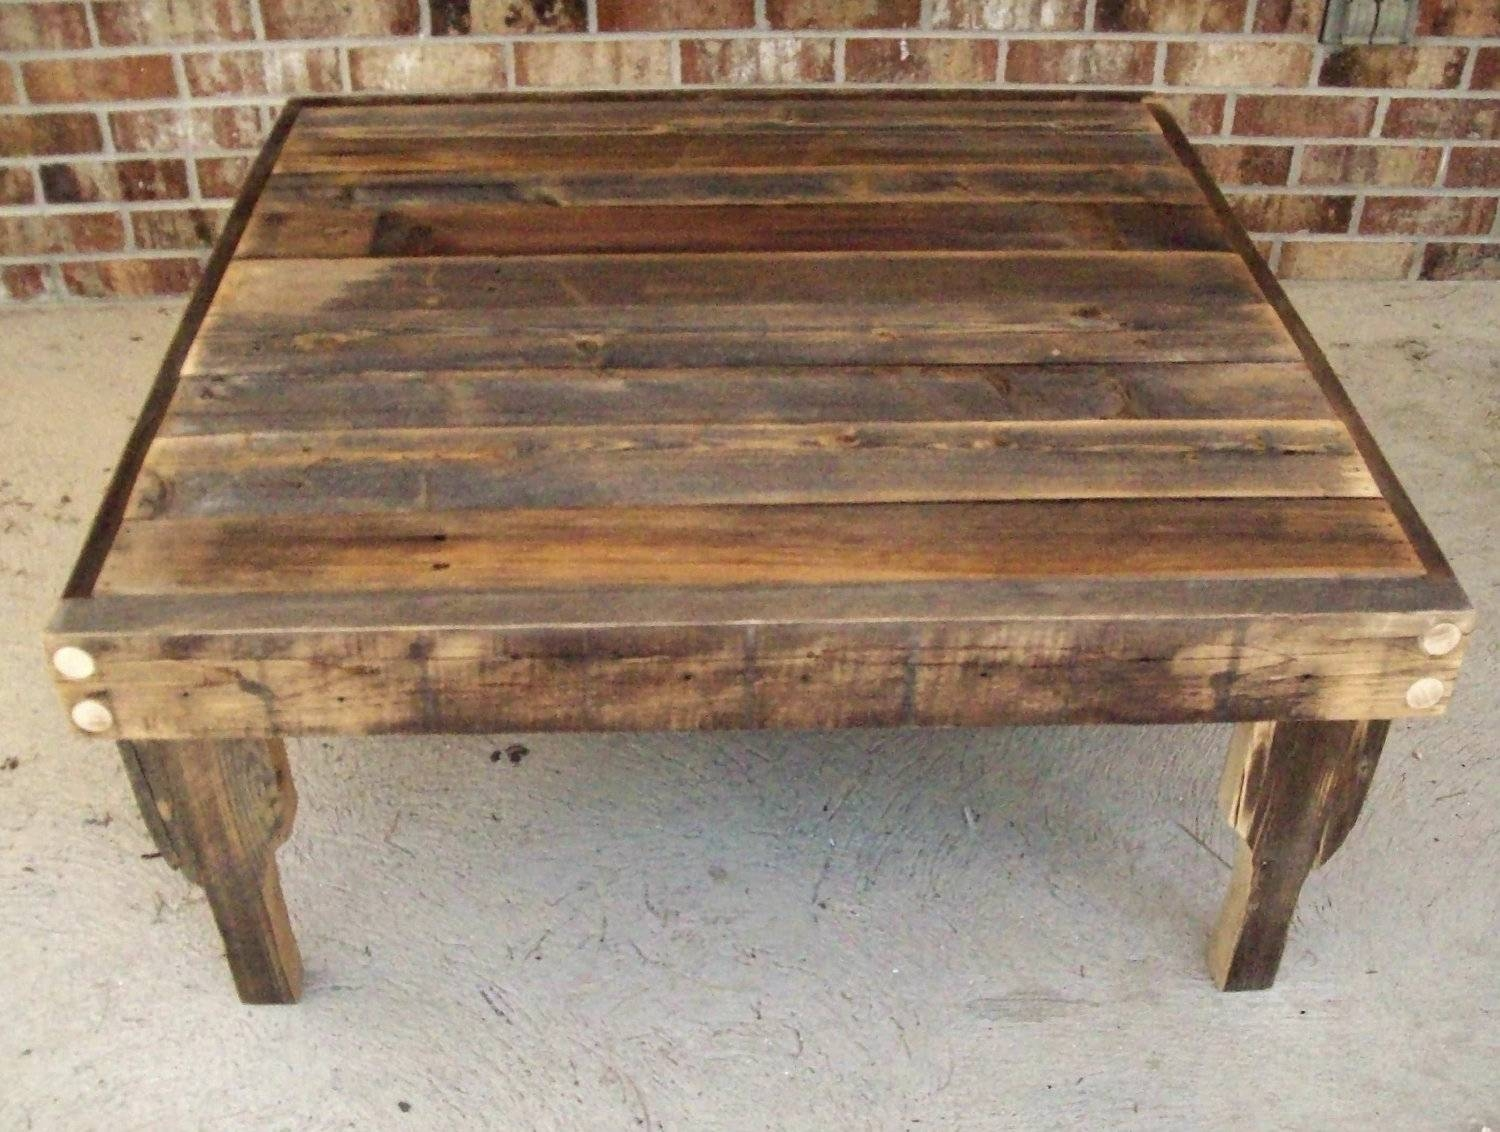 Coffee Tables Ideas: Modern Large Wooden Coffee Table Large Dark for Huge Coffee Tables (Image 7 of 15)